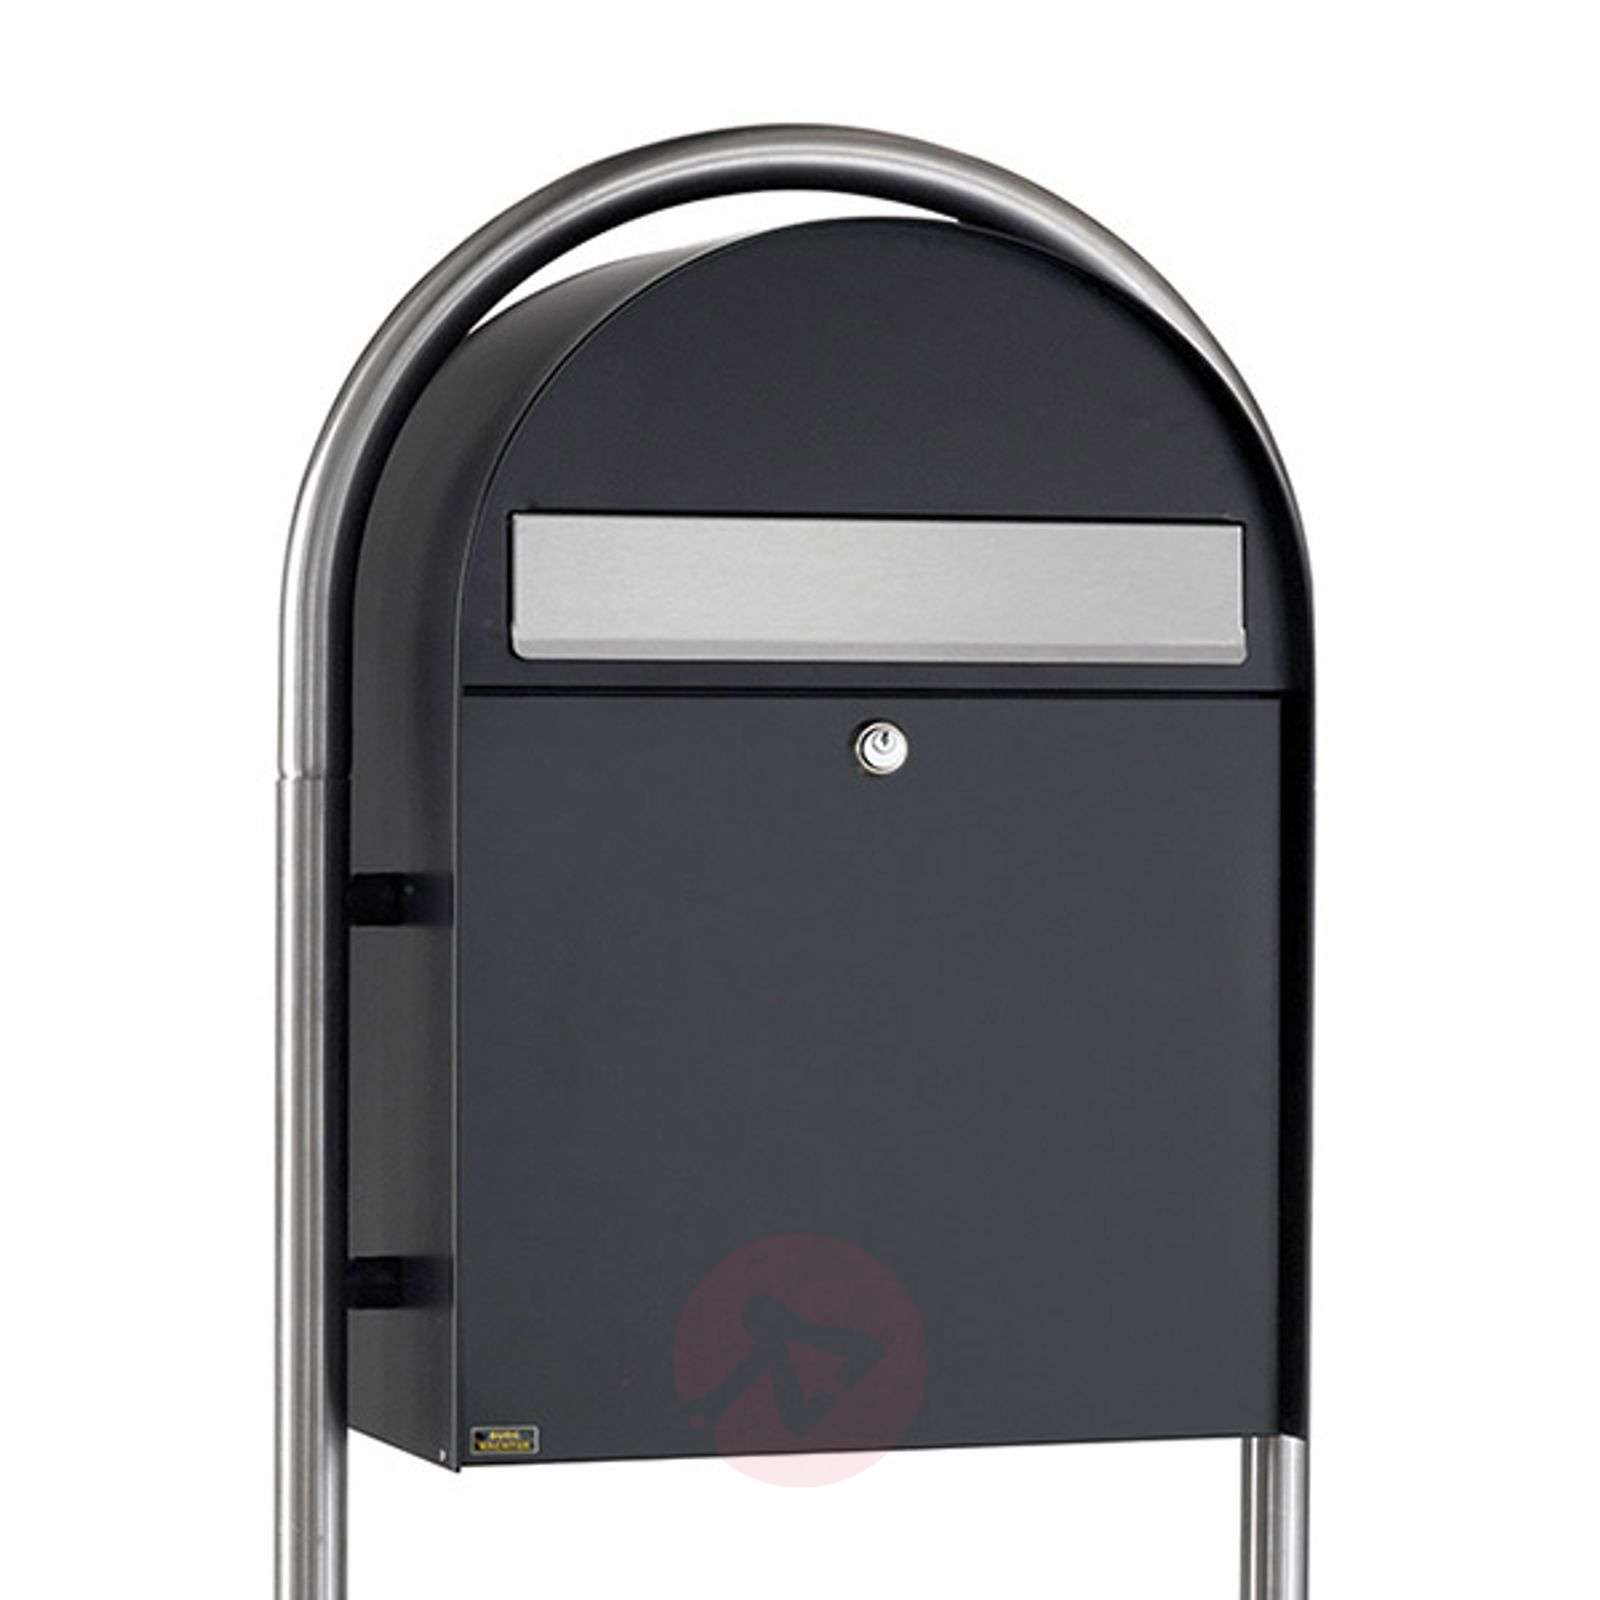 Nordic 780 large letter box, coated-1532142X-01